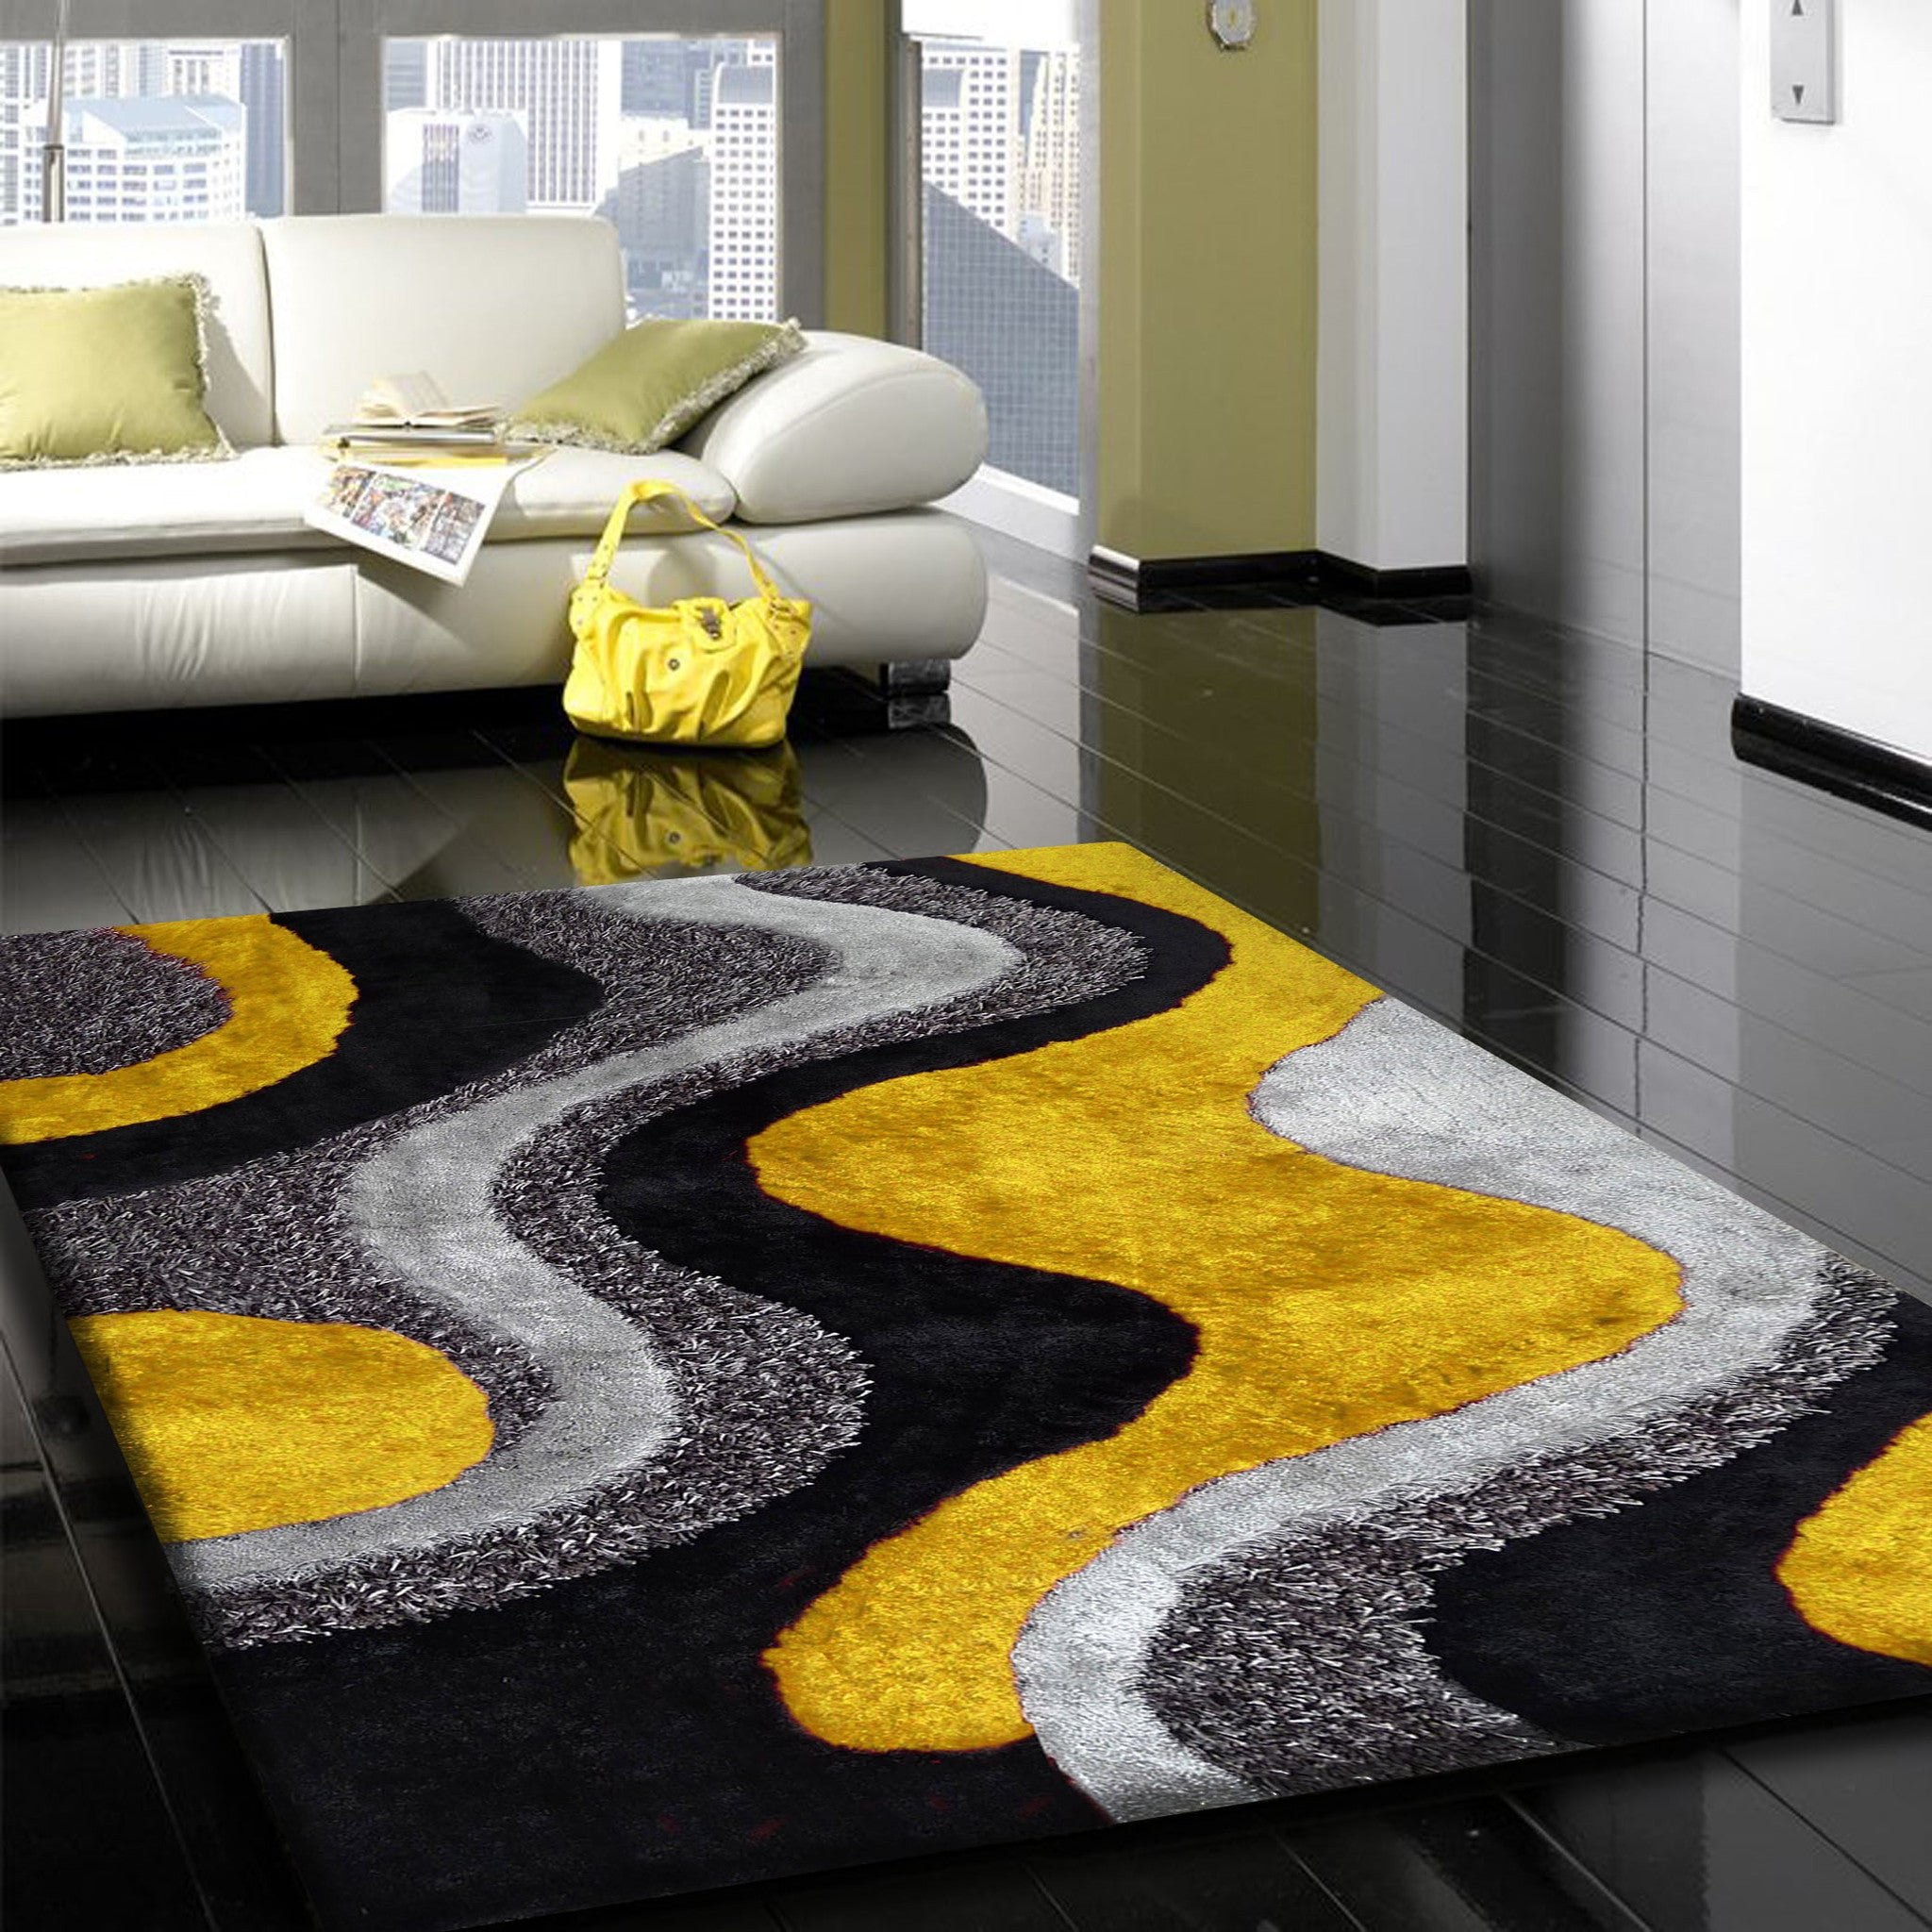 Design Yellow Rug 2tone grey to dark effect with yellow shag rug addiction 5 x 7 ft